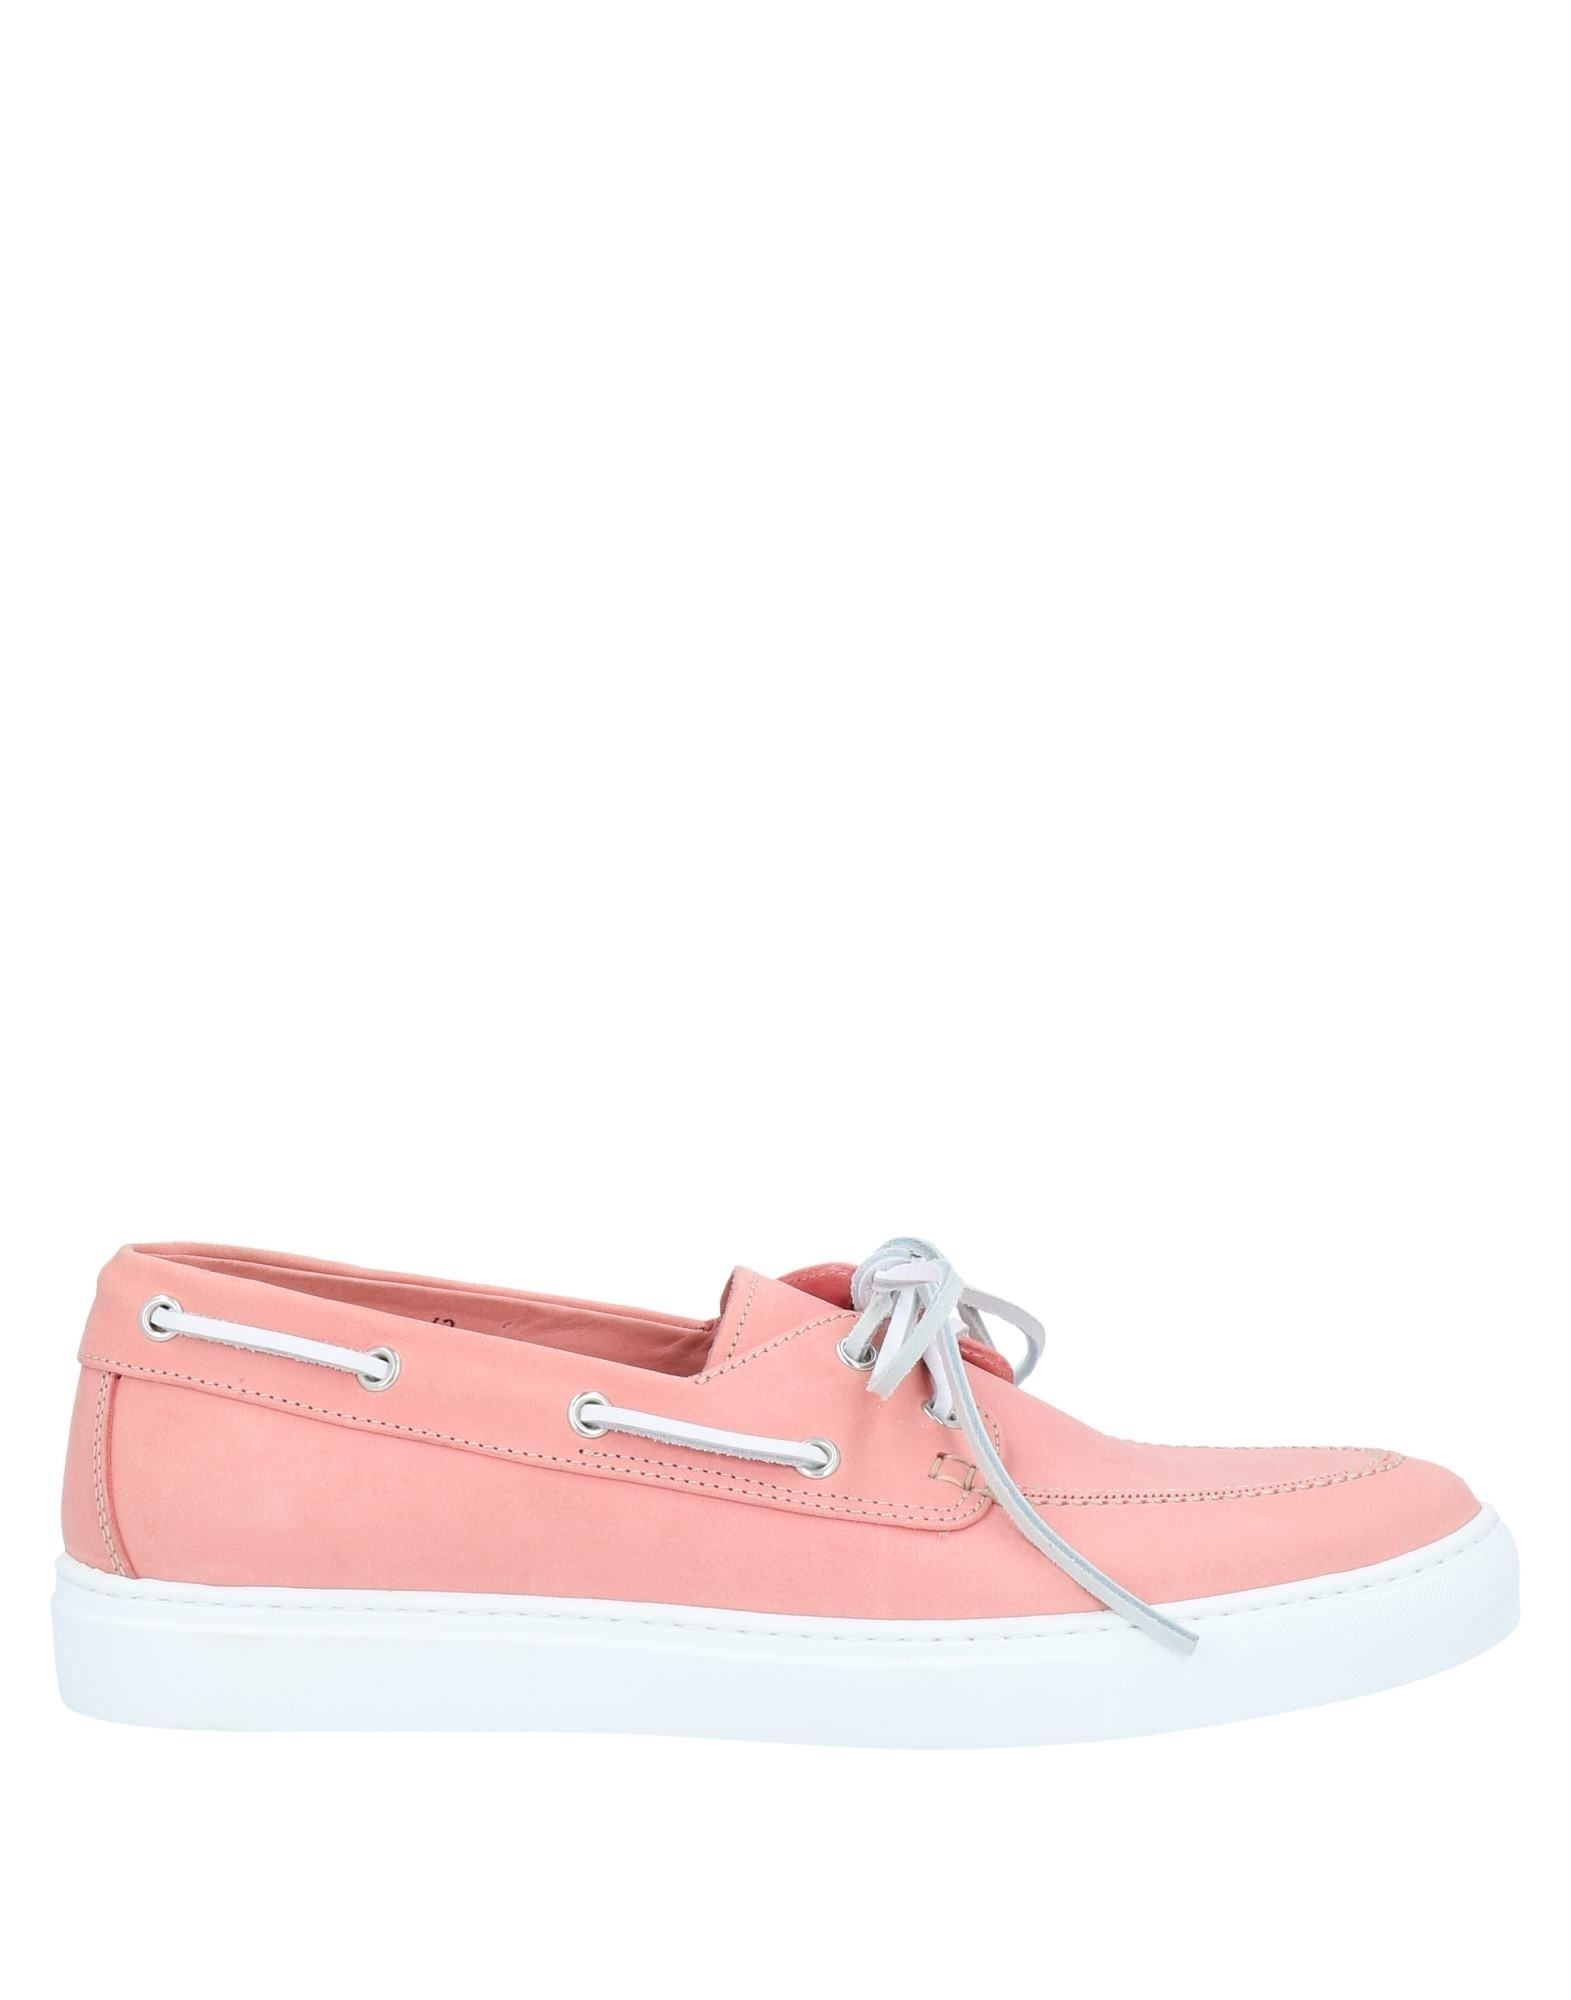 Henderson Baracco Loafers In Pink